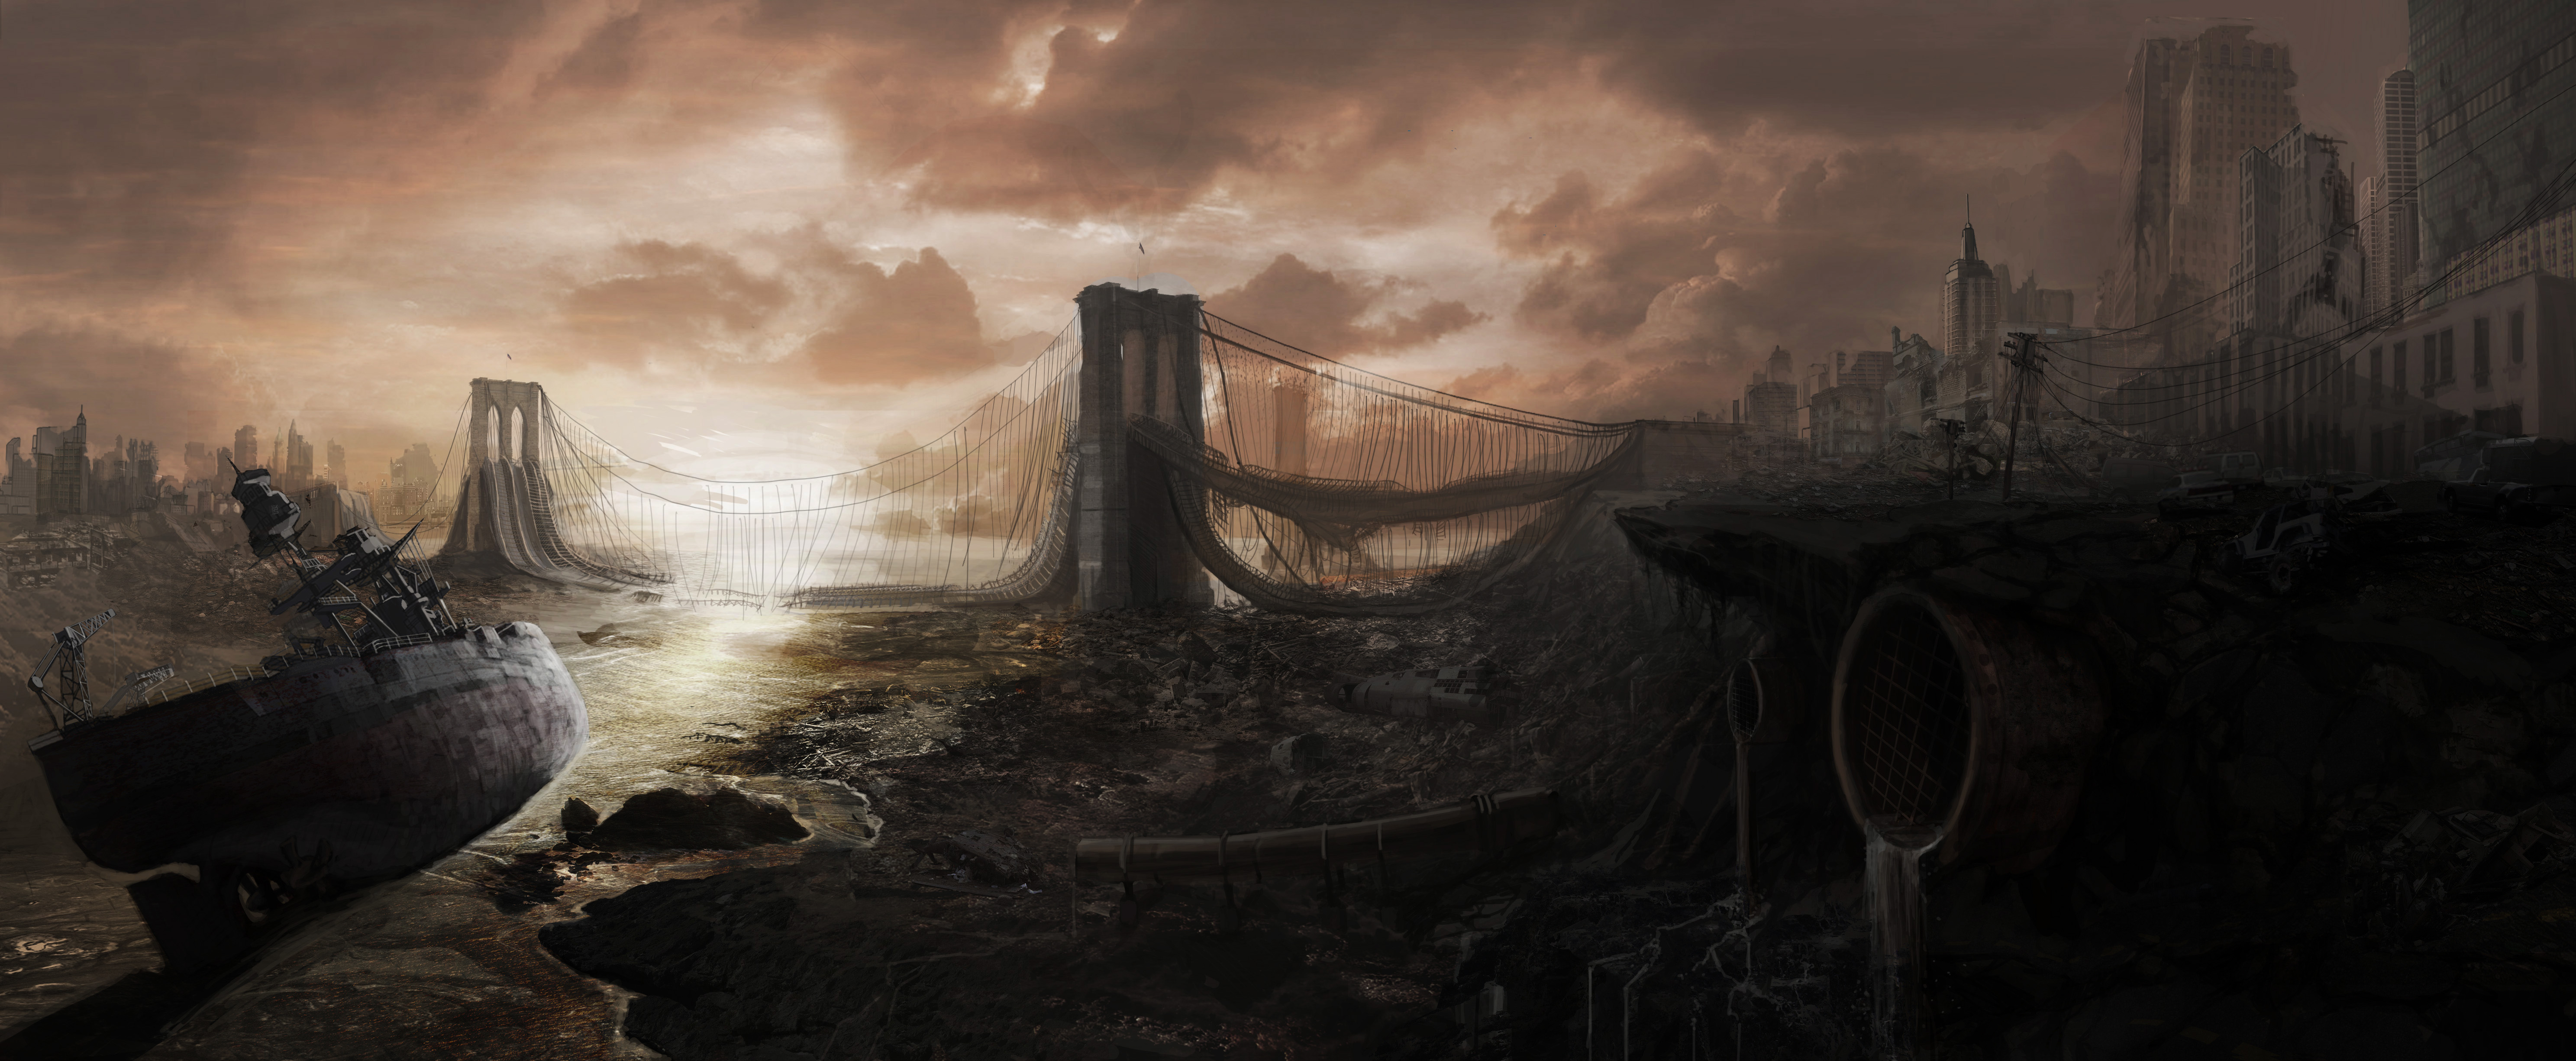 Post Apocalyptic City Concept Art 4 Image Ashes Of Dystopia Mod Db